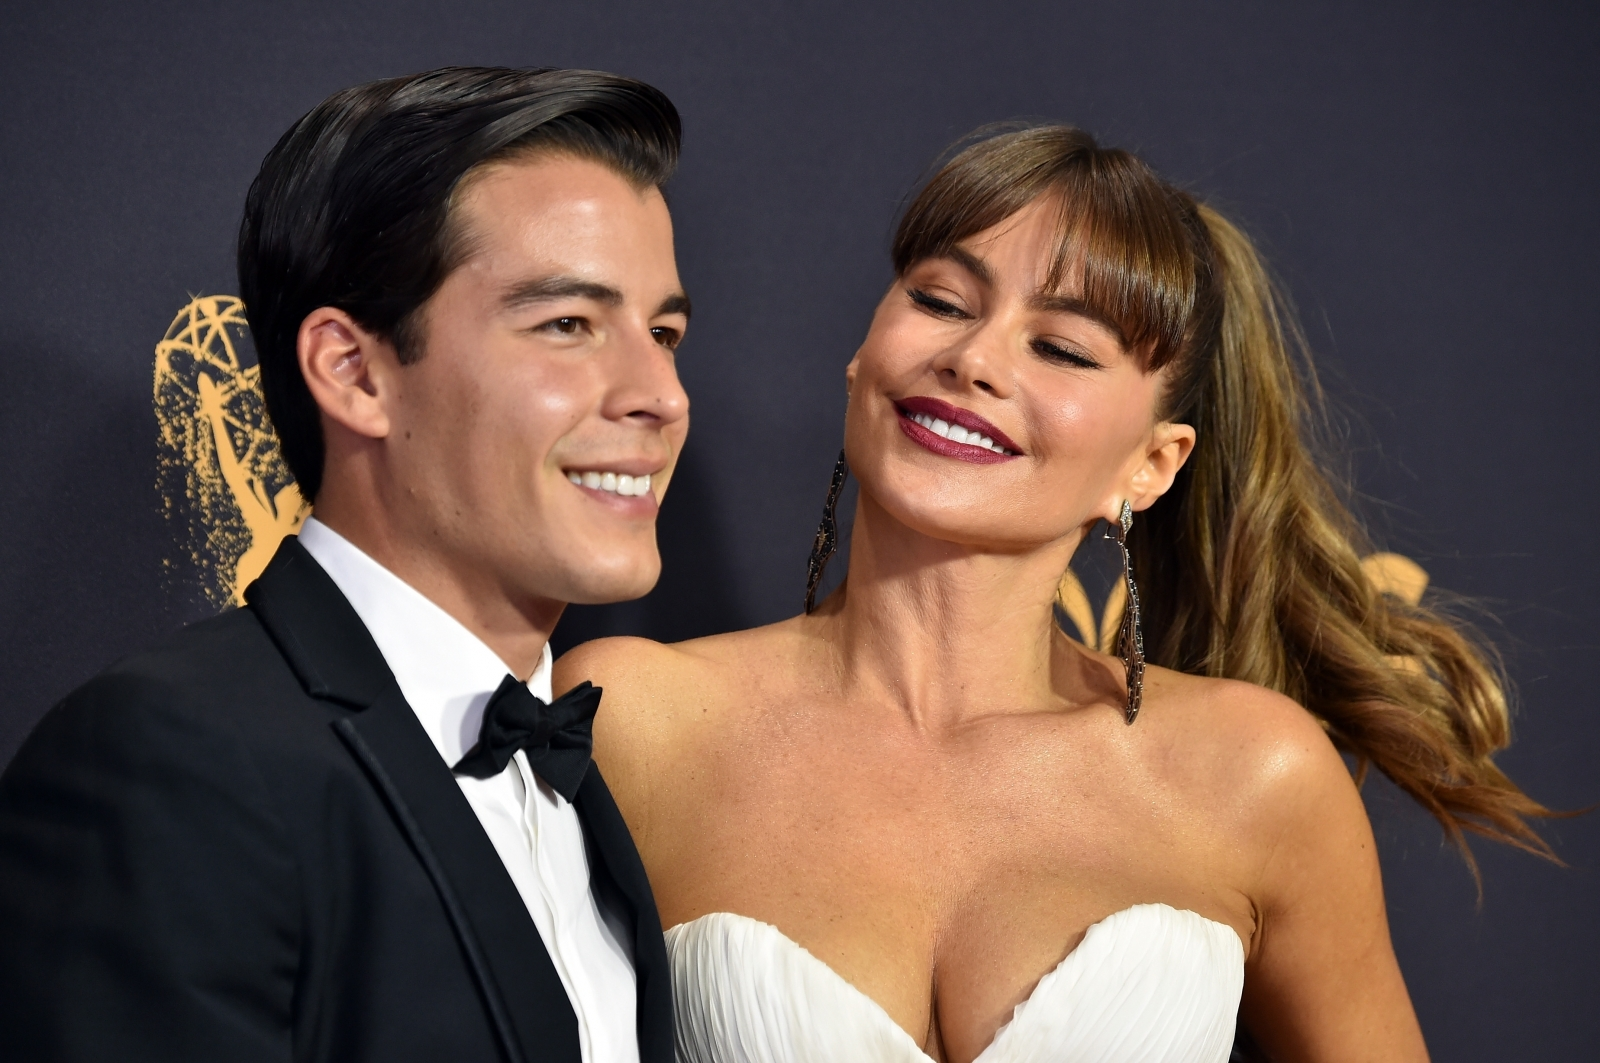 People can't get over how handsome Sofia Vergara's son is